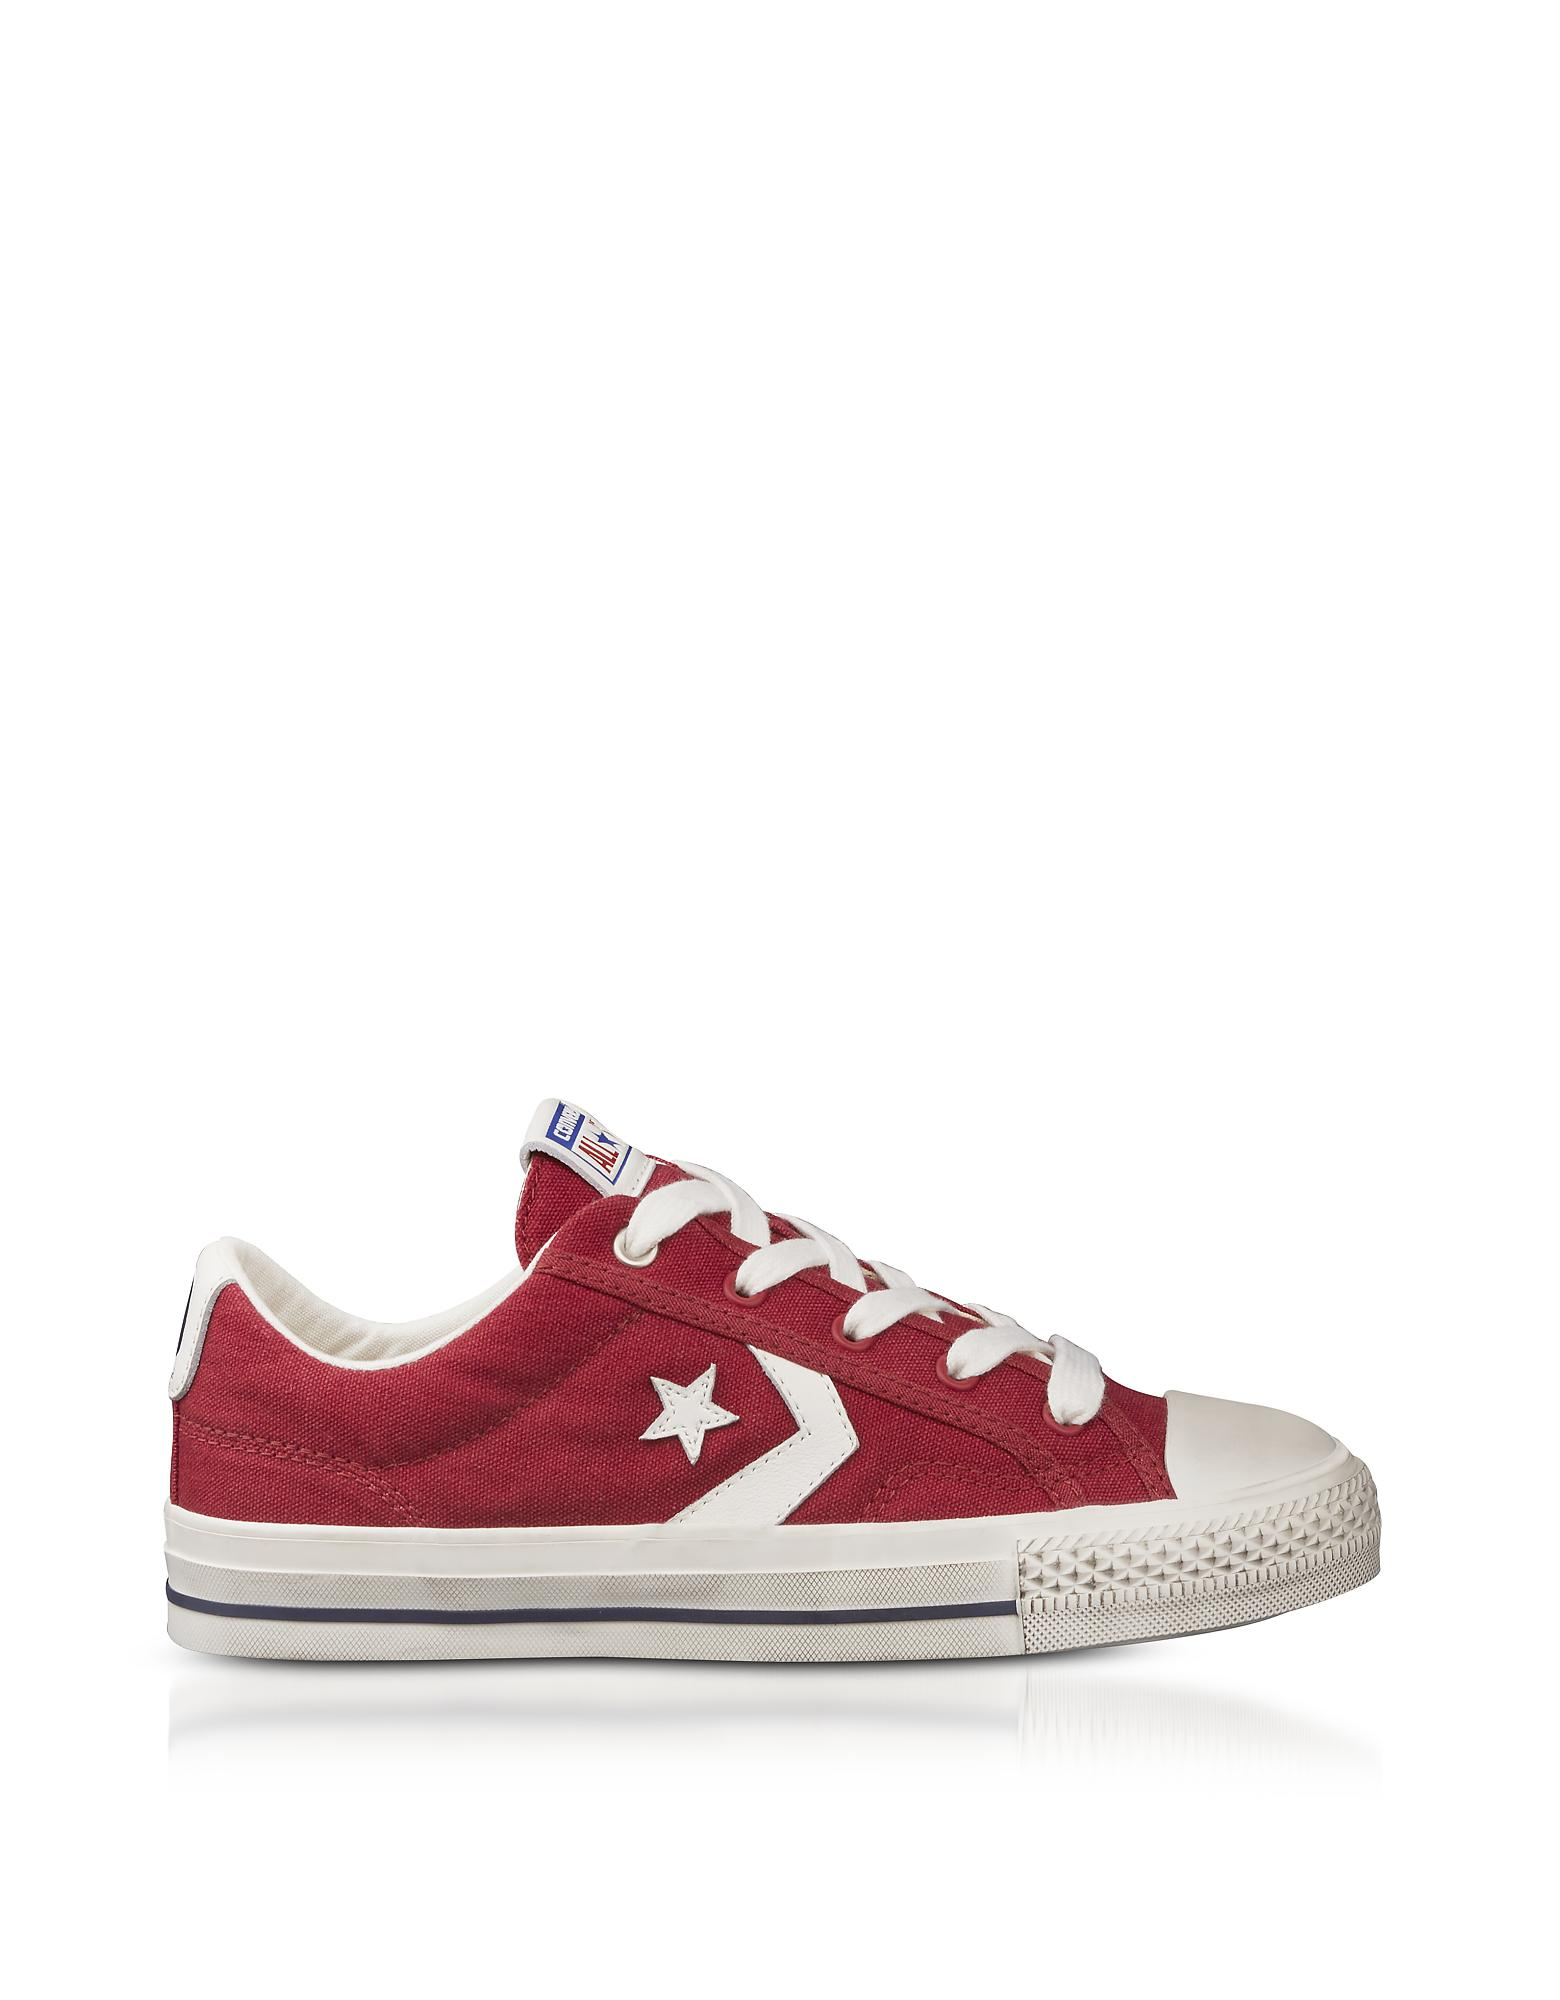 New Canvas Hombre Converse Rojo Star Player Ox Canvas New Trainers Lace Up a289a1